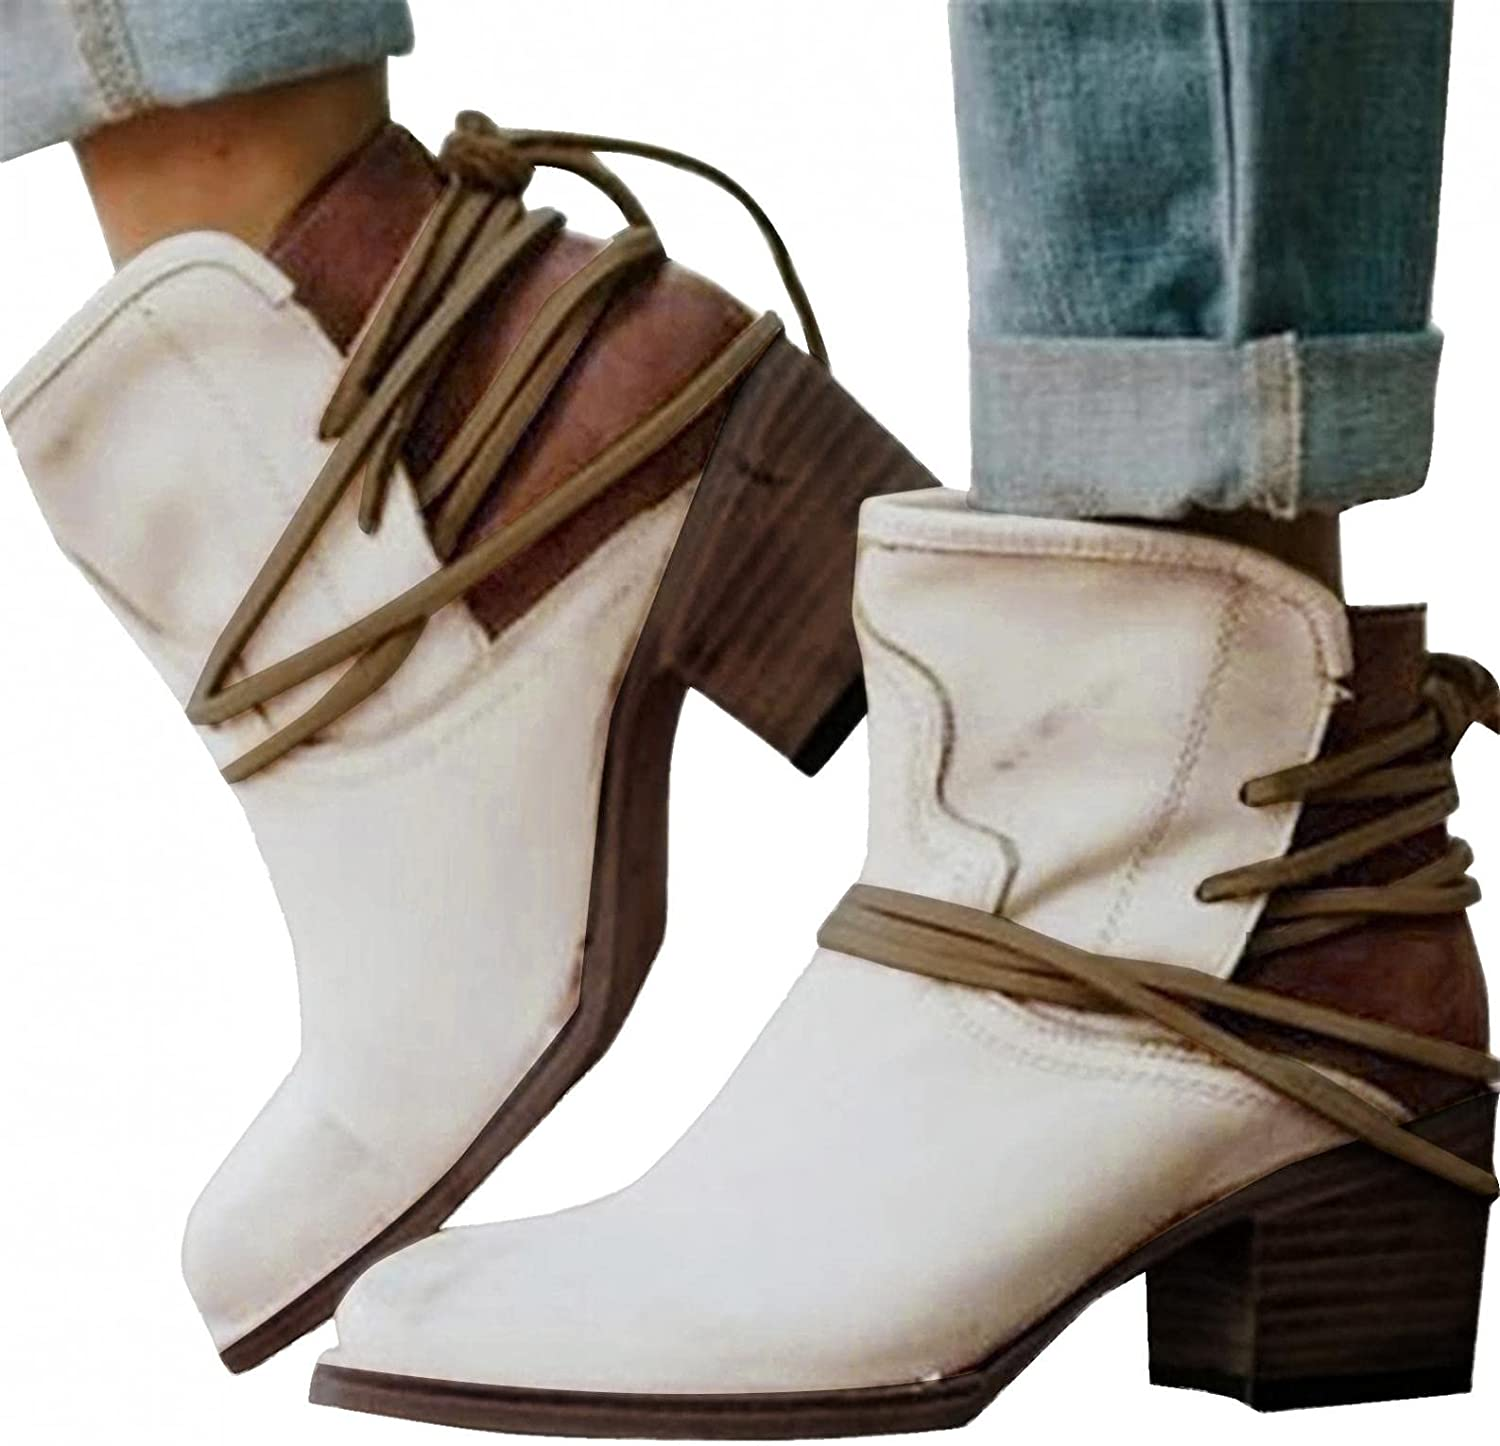 Zieglen Boots for Women, Womens Boots with Stacked Heel Ankle Cowboy Booties Platform Boots Western Boots Womens Winter Boots